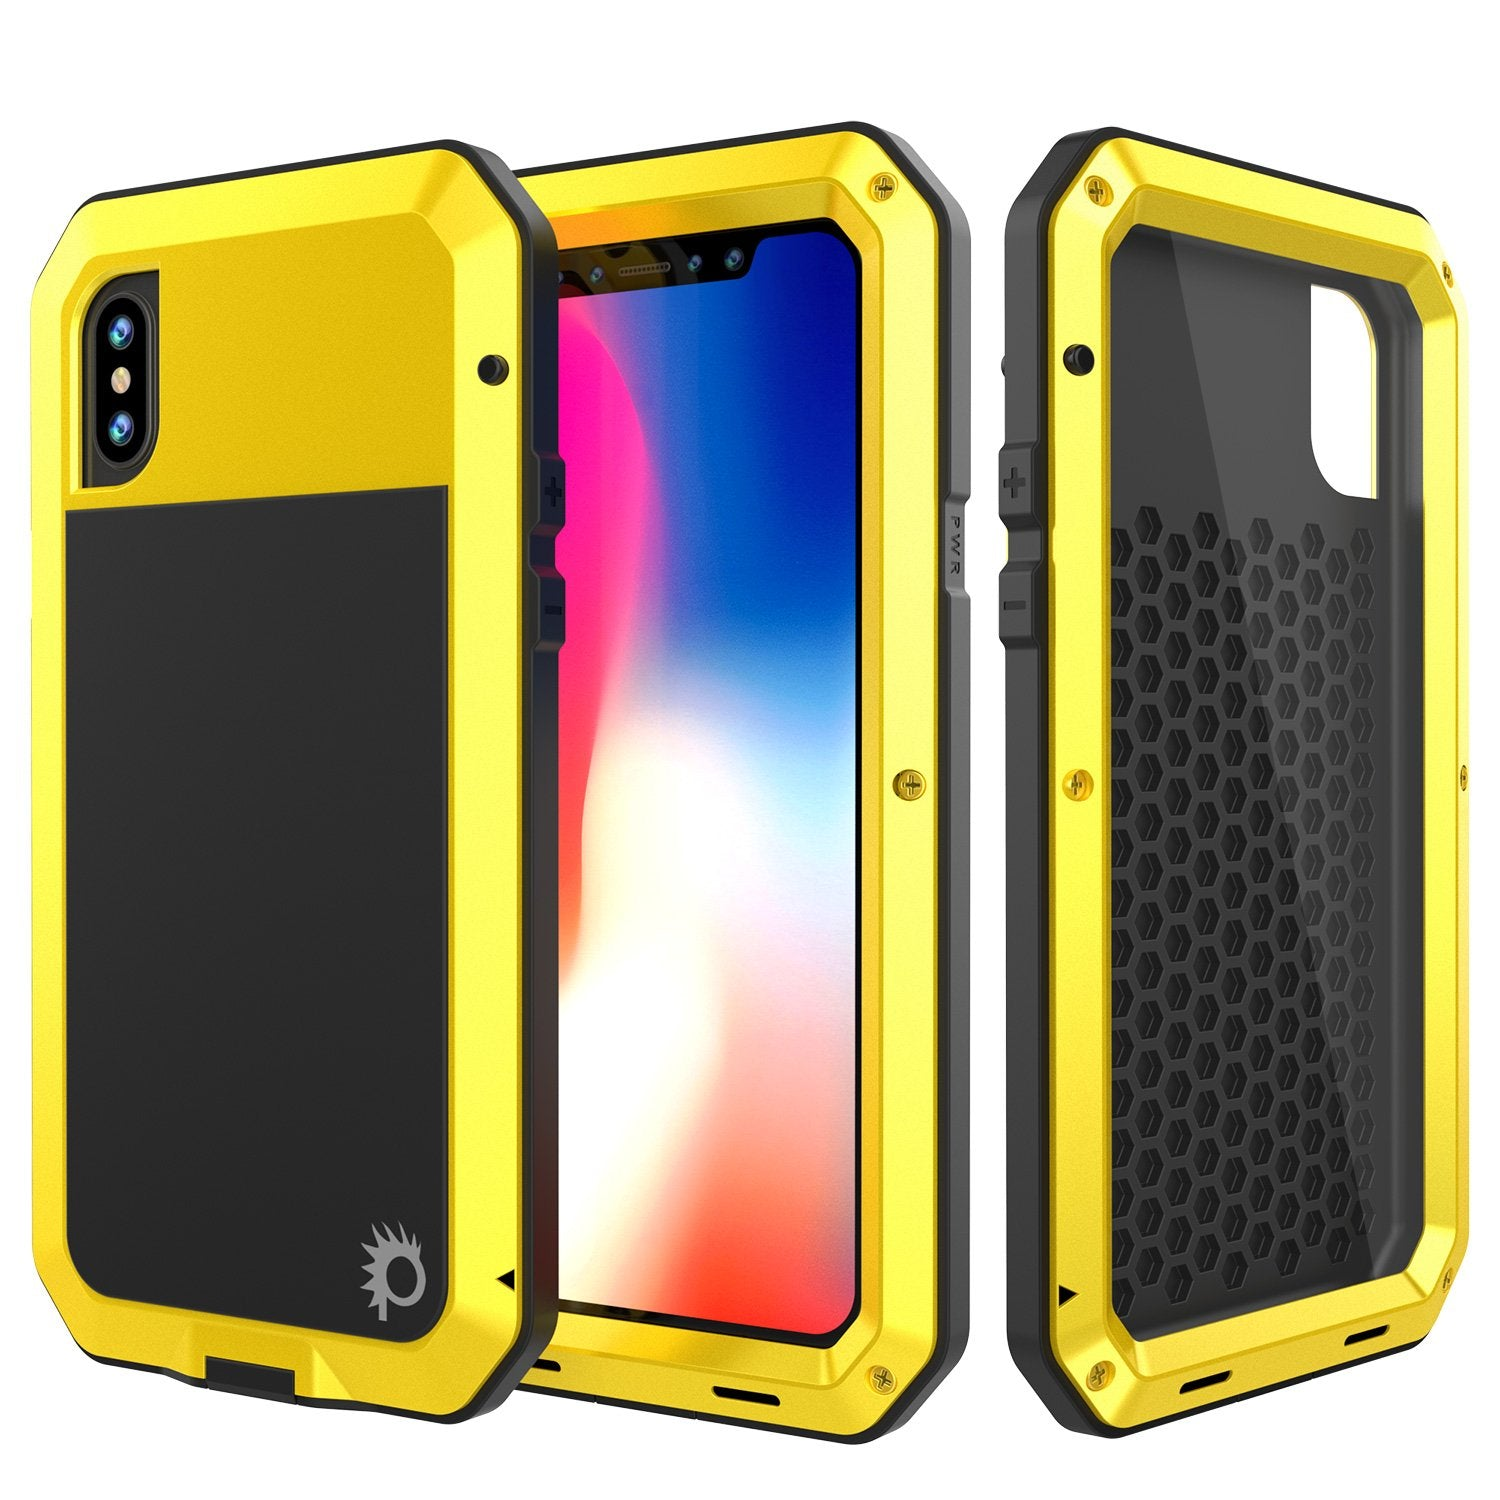 iPhone X Metal Case, Heavy Duty Military Grade Rugged Armor Cover [shock proof] Hybrid Full Body Hard Aluminum & TPU Design